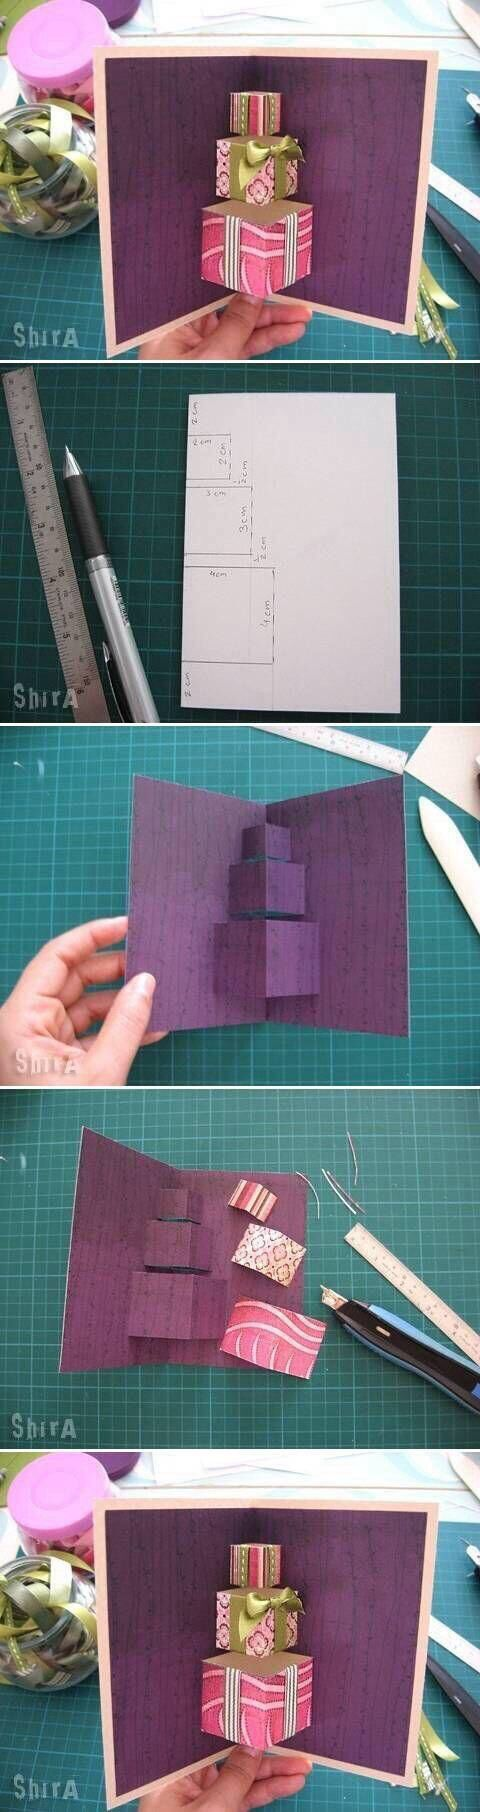 Make your own 3D card - Christmas cards